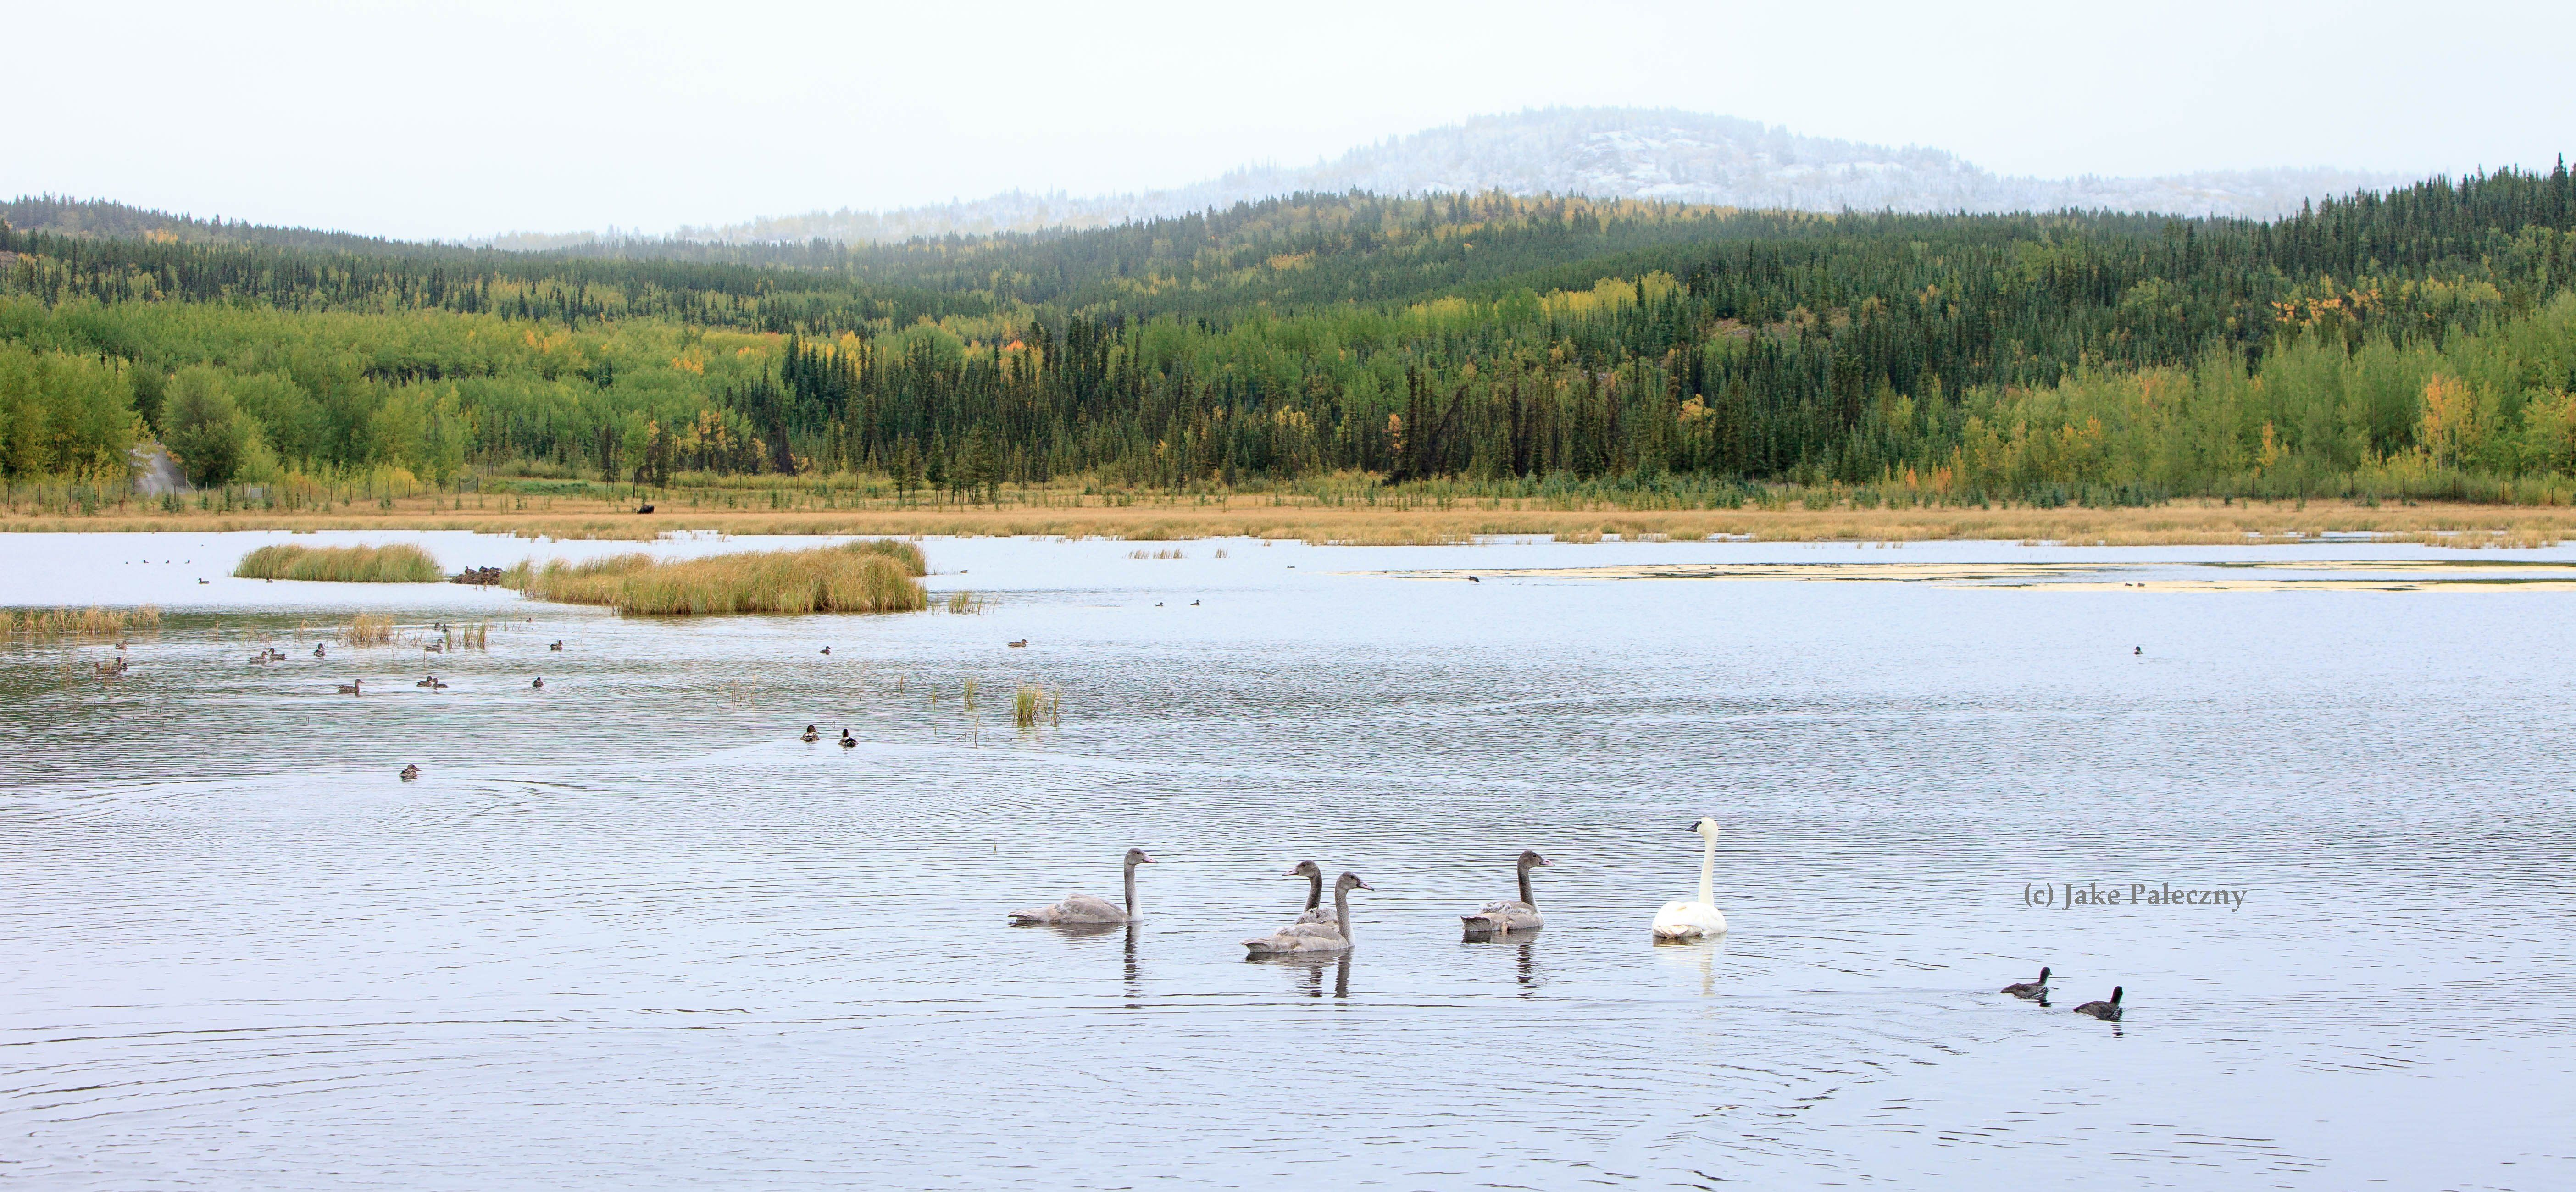 The Yukon is an important nesting area for the Pacific Coast Population